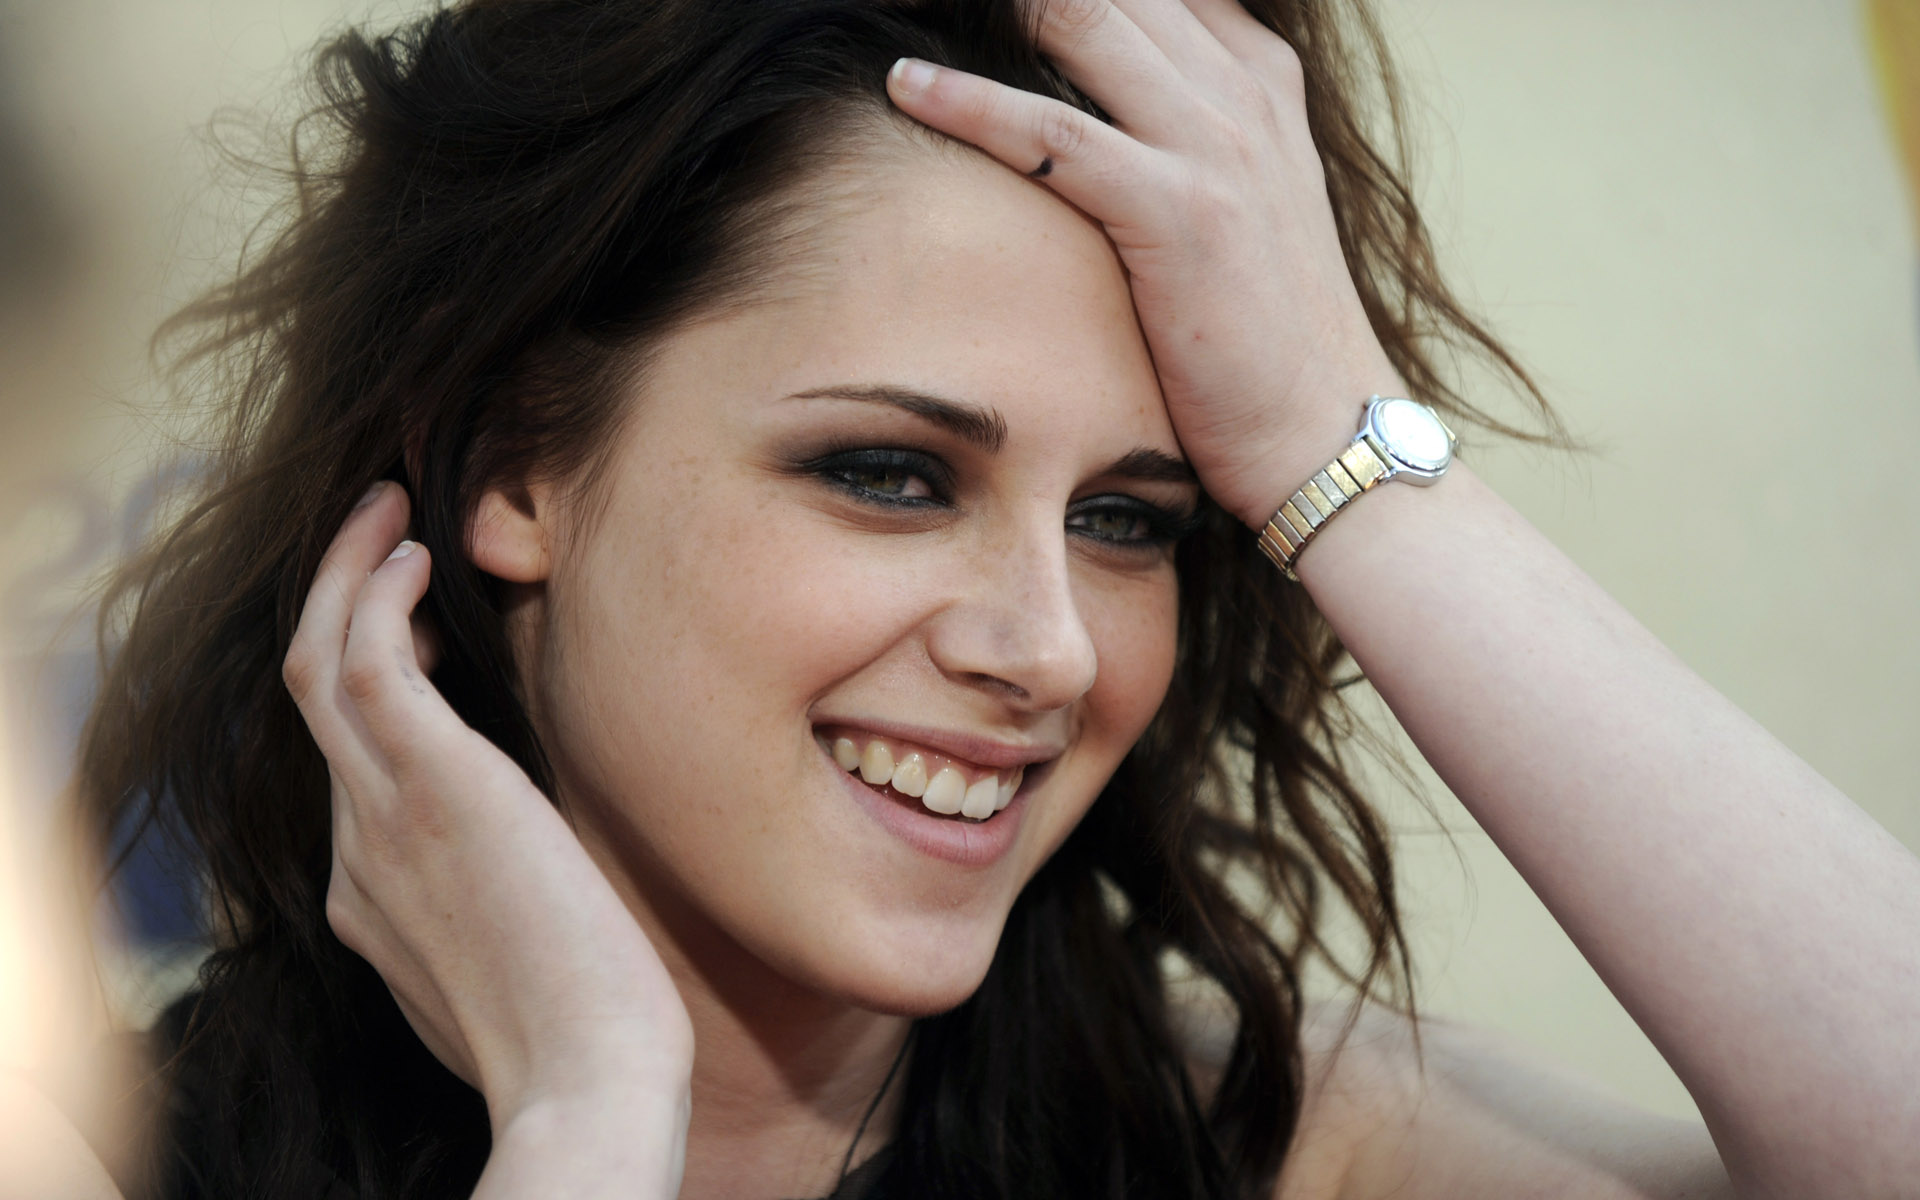 kristen stewart wallpapers download - sf wallpaper